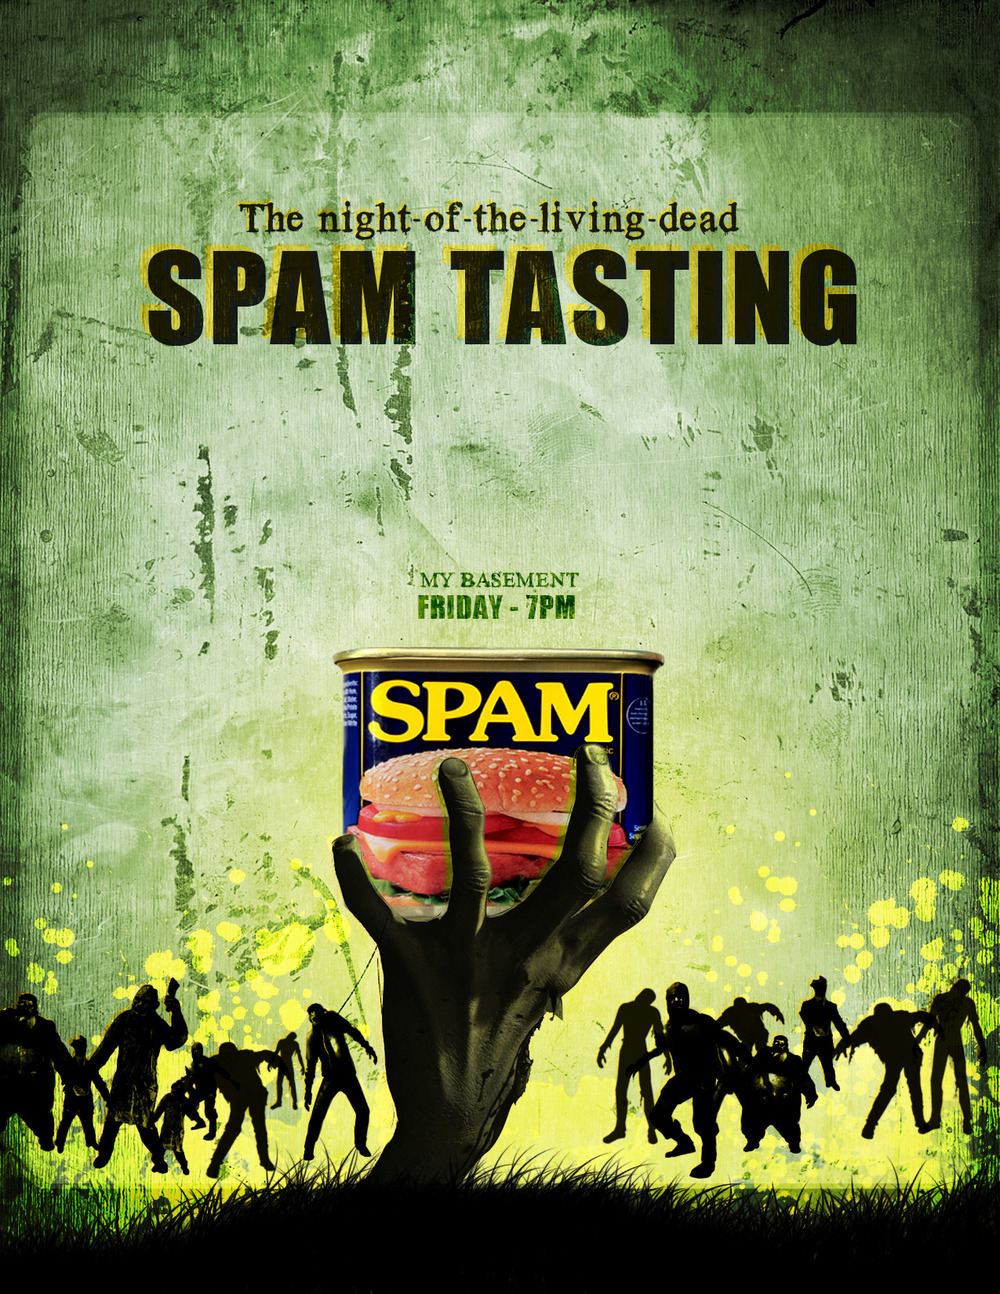 Some posters I made for a SPAM tasting. Friends came, but no one left happy...